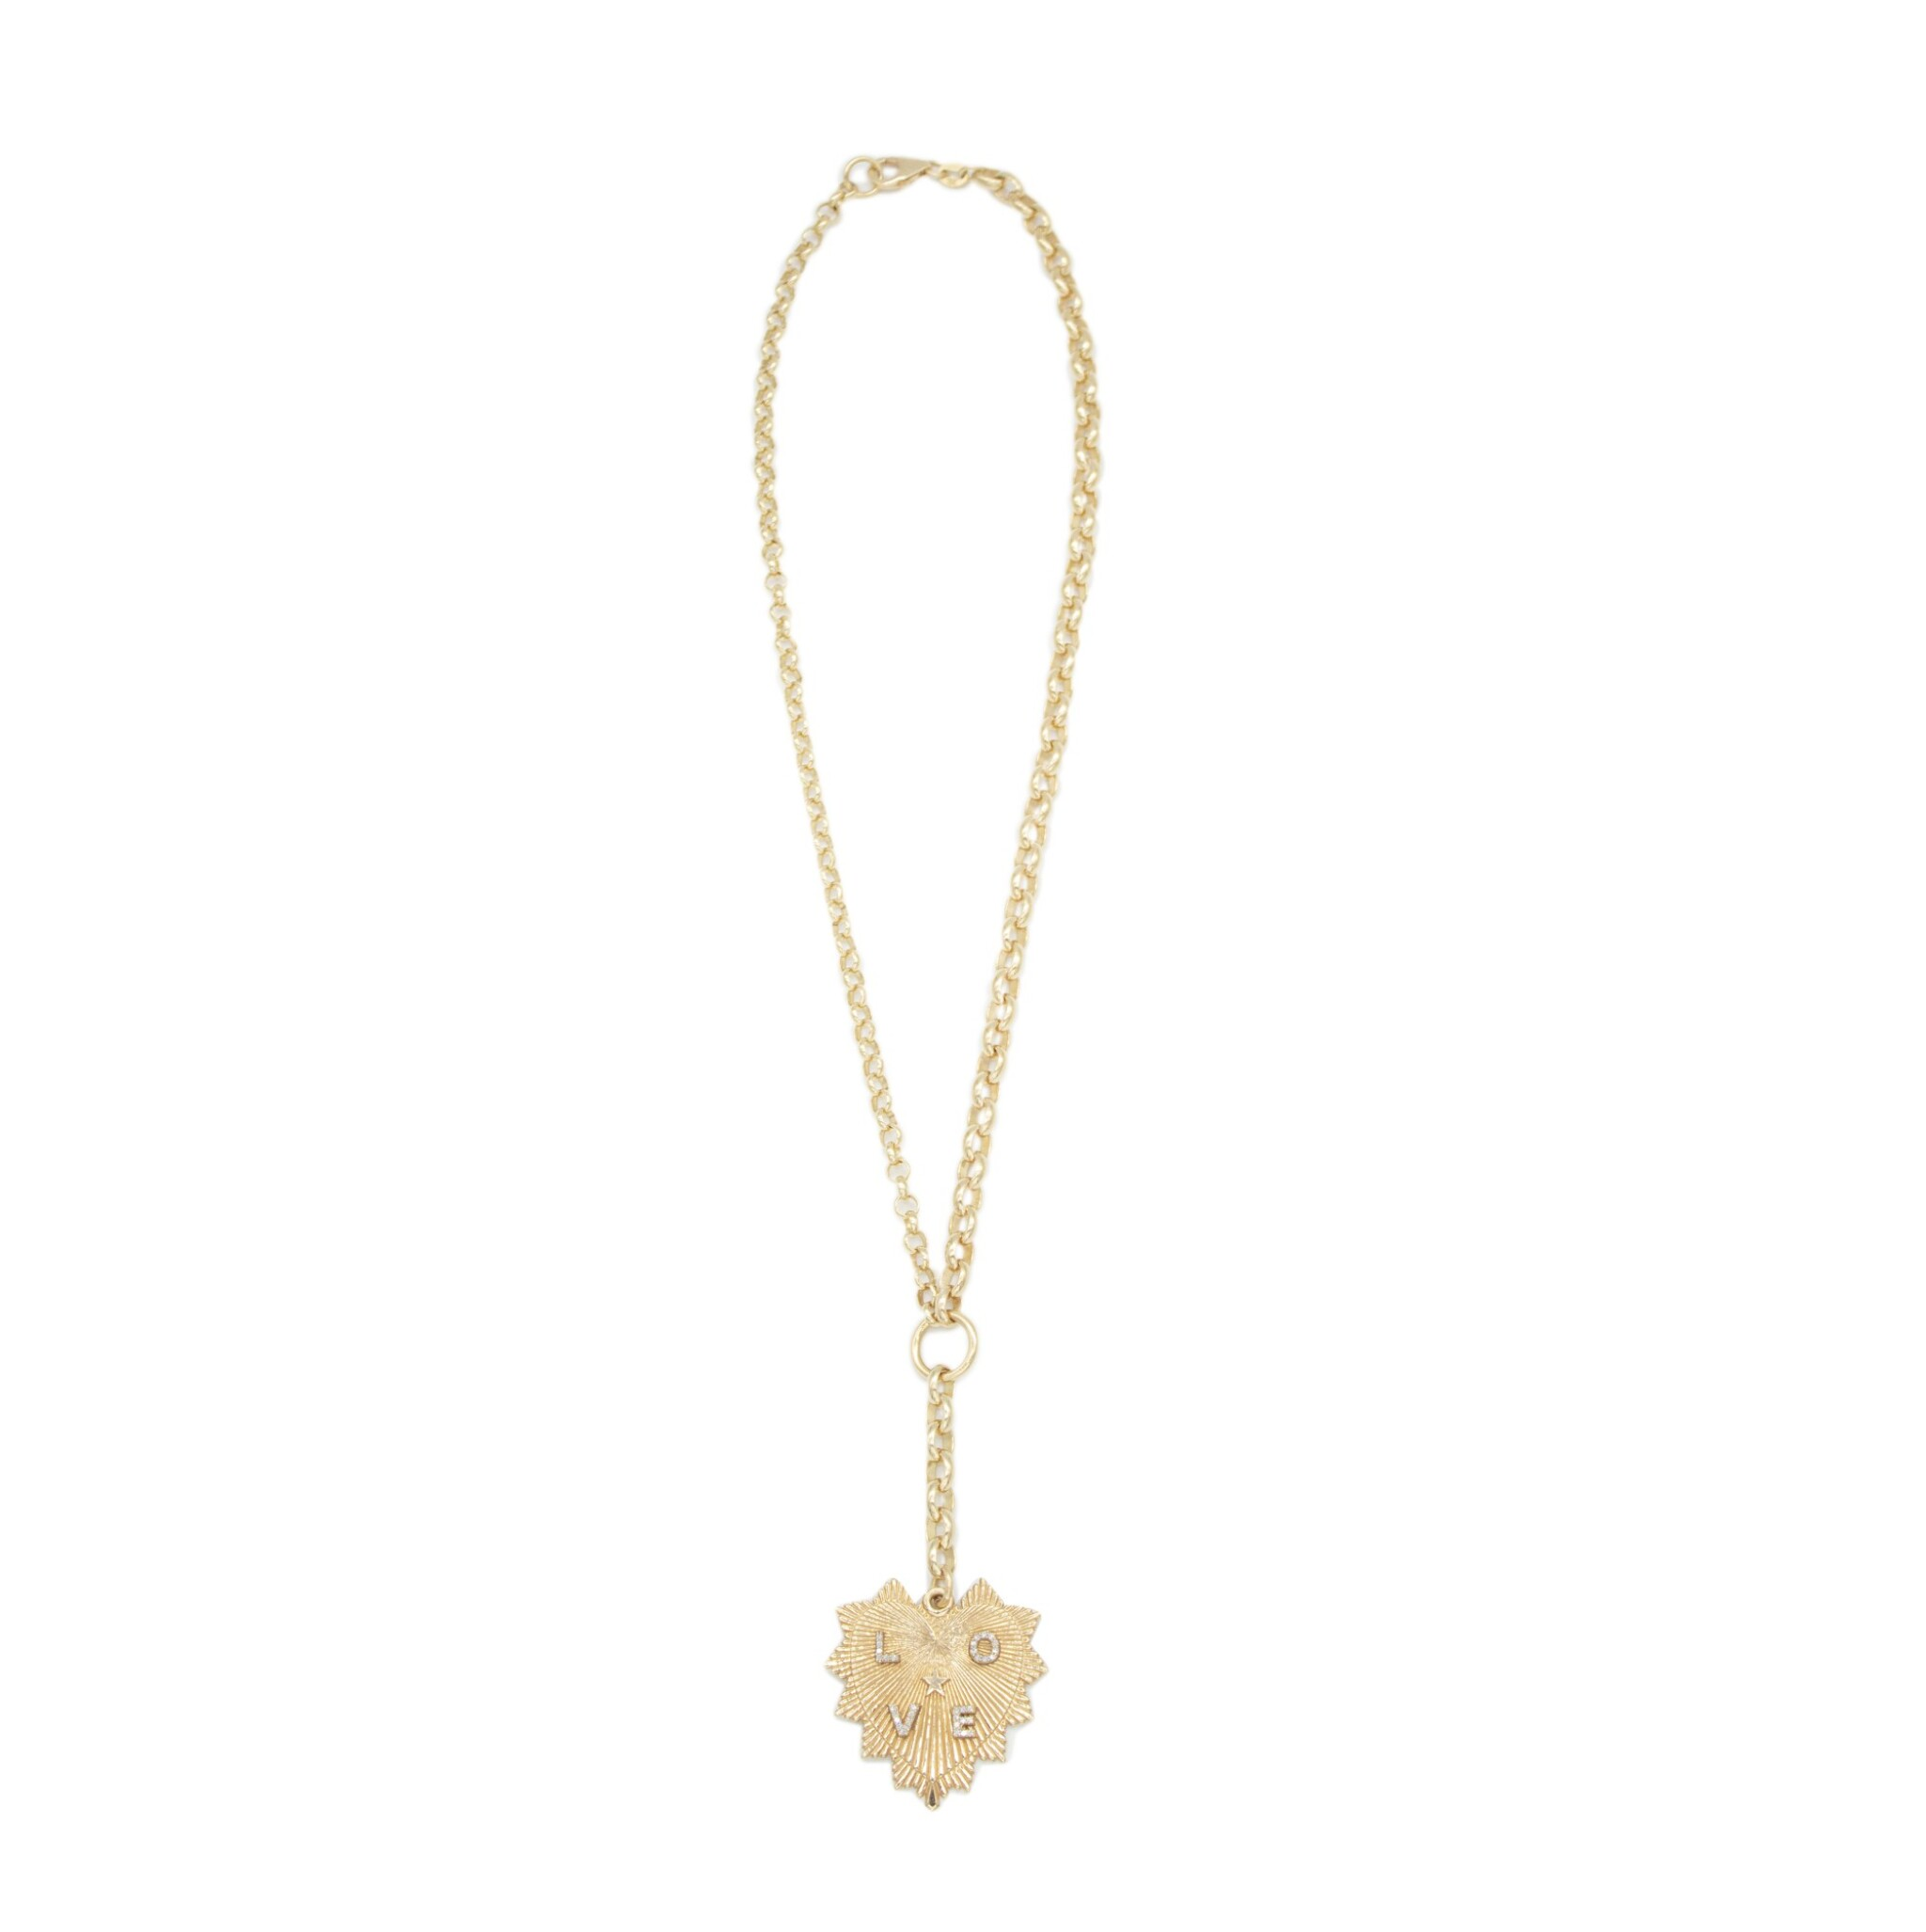 View full screen - View 1 of Lot 17. Foundrae | 18 Karat Gold and Diamond 'Heart Token' Pendant-Necklace.